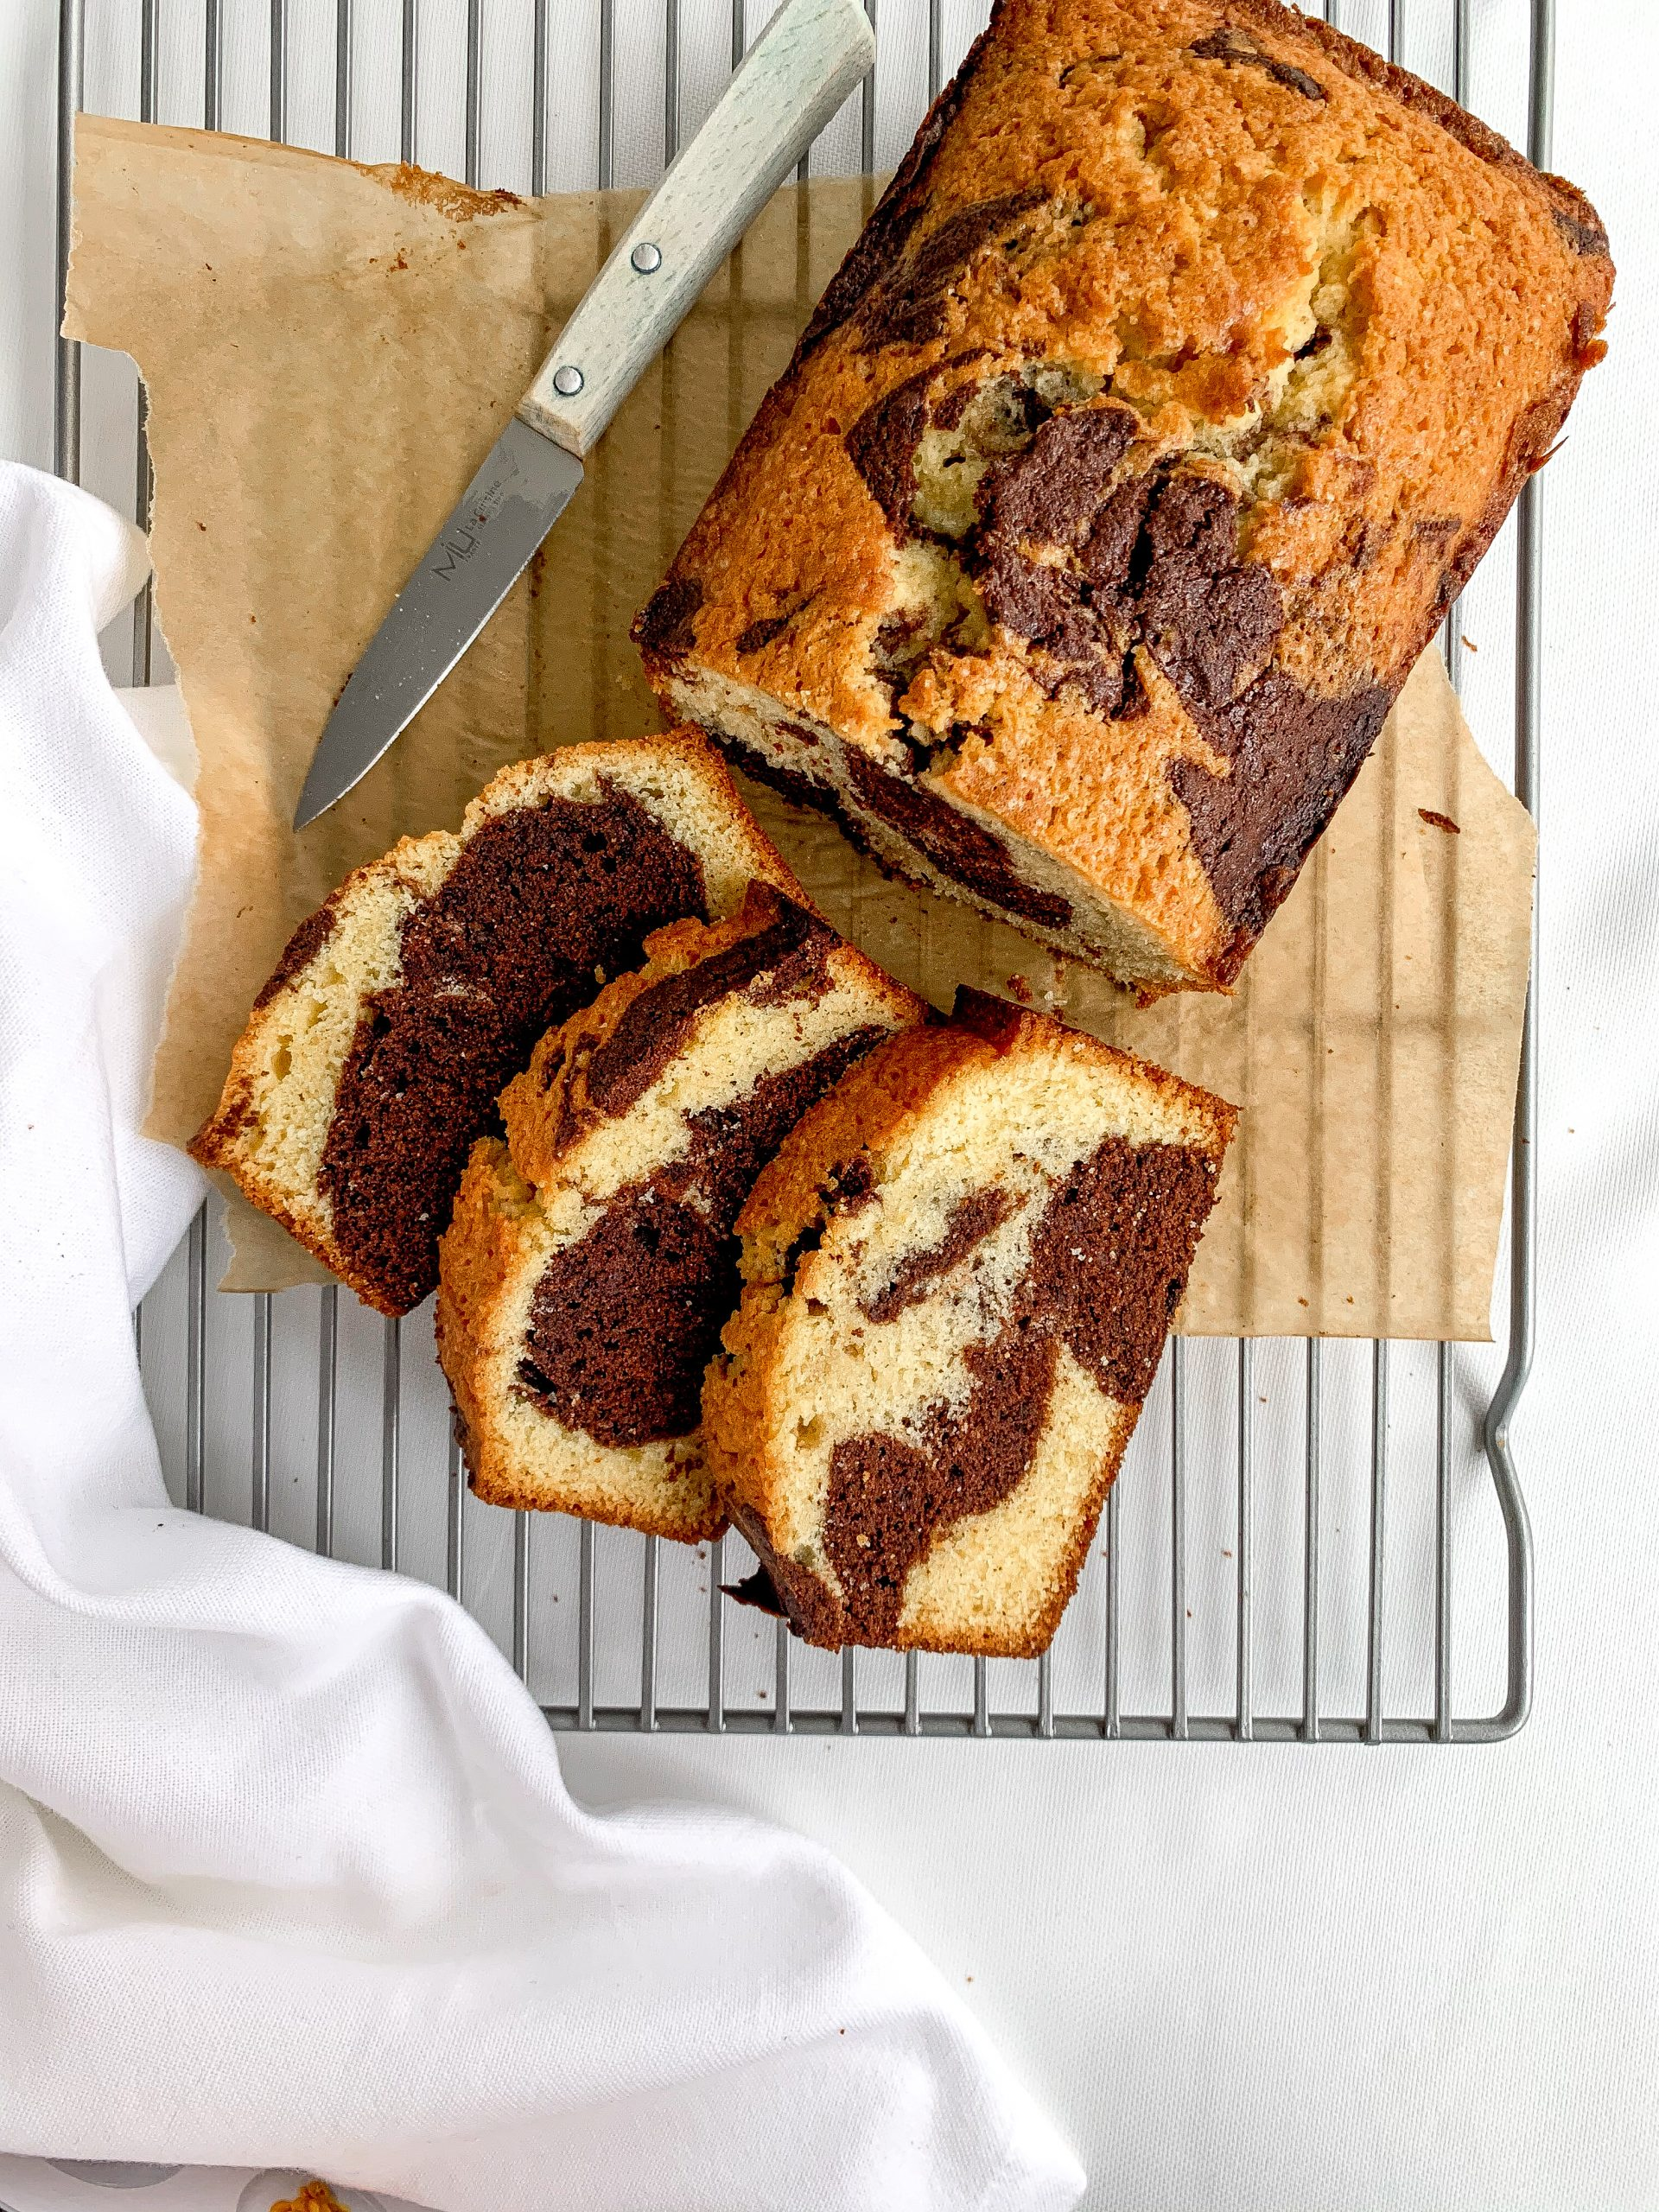 Marble Chocolate cake sliced on a wire rack